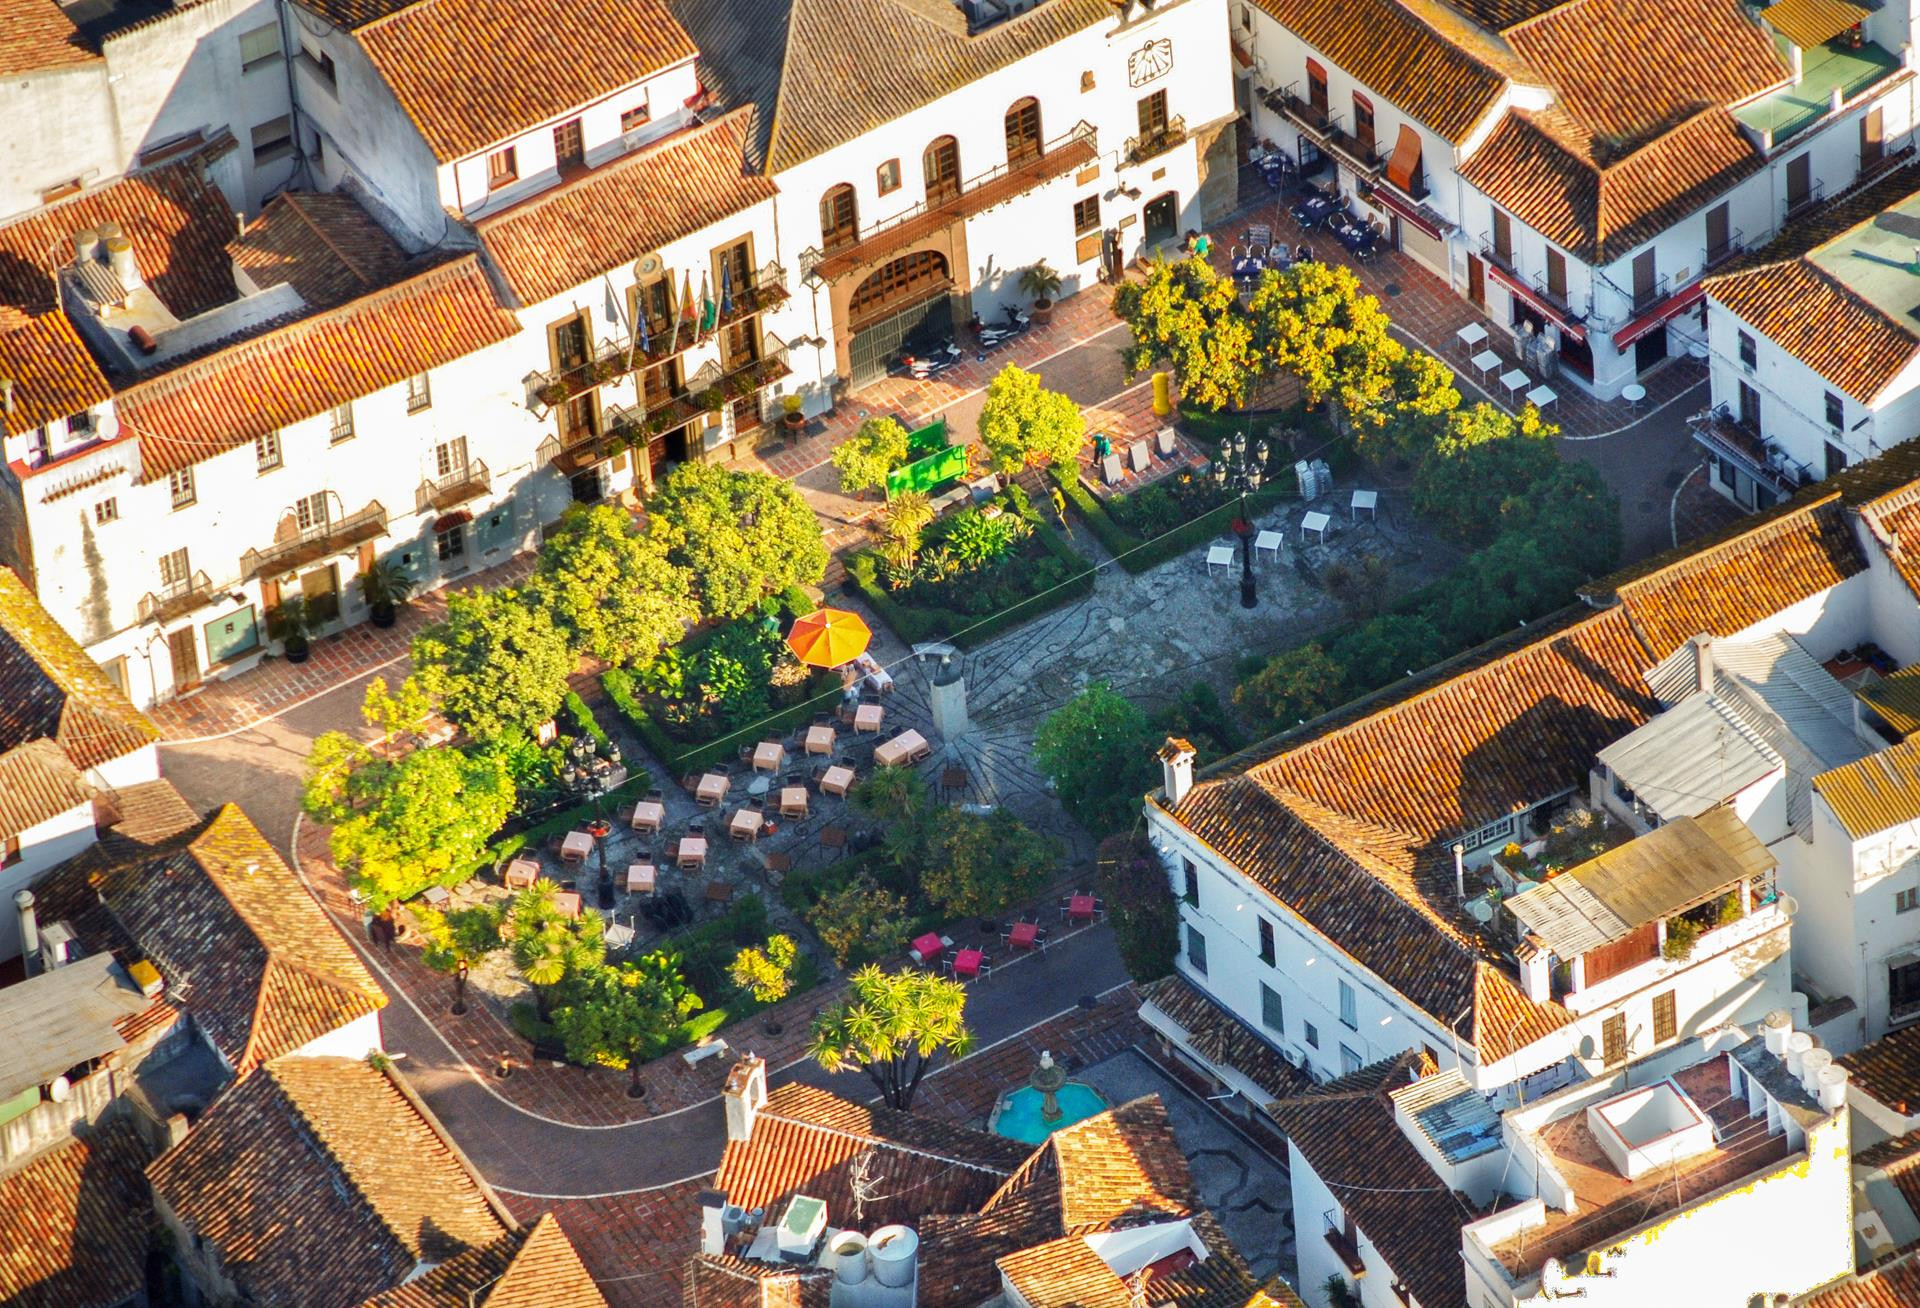 Boutique hotel in Marbella Old Town